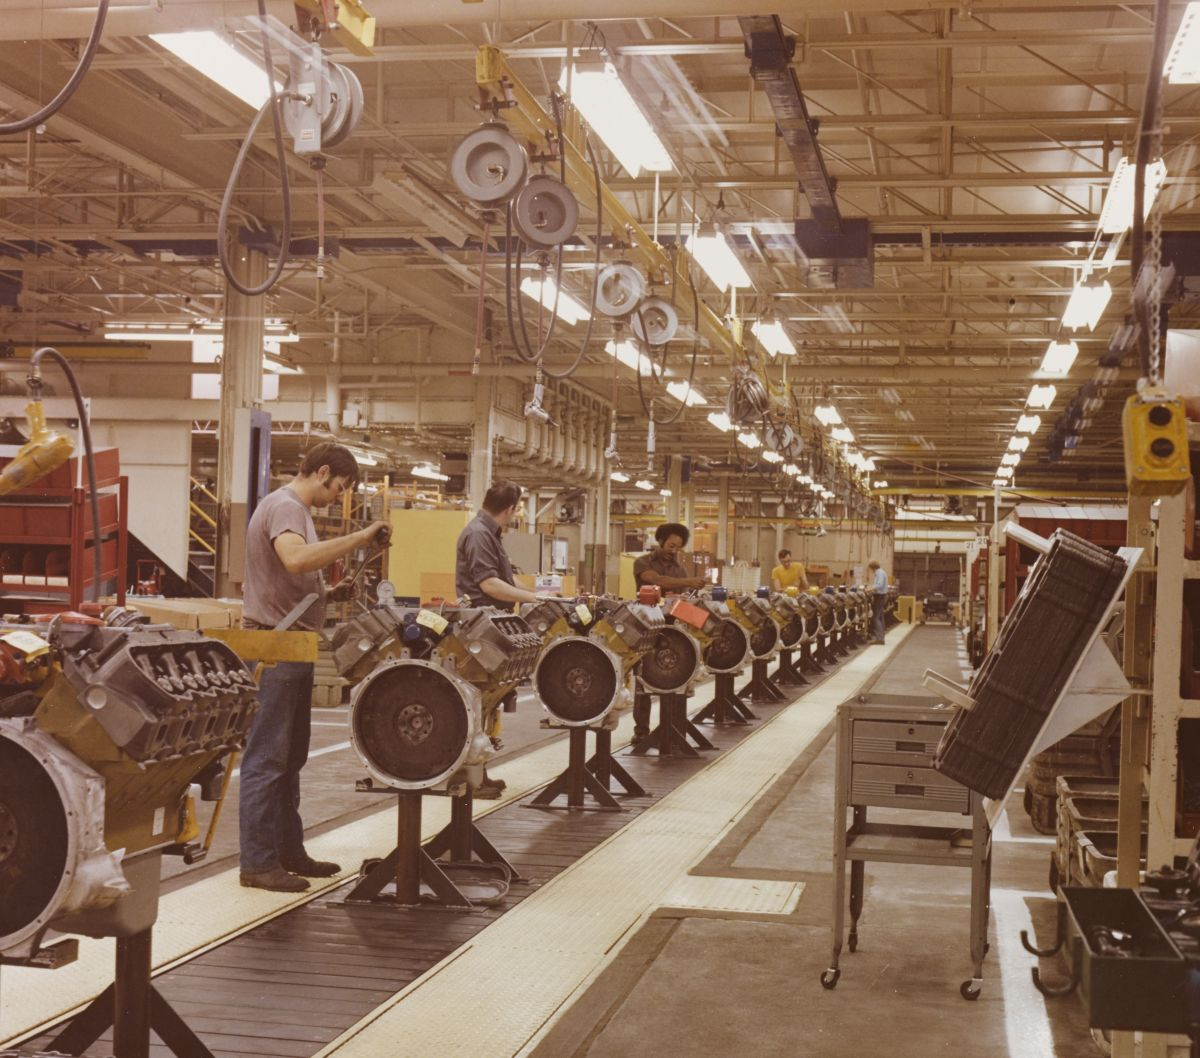 Caterpillar remanufacturing assembly line in Bettendorf, Iowa.